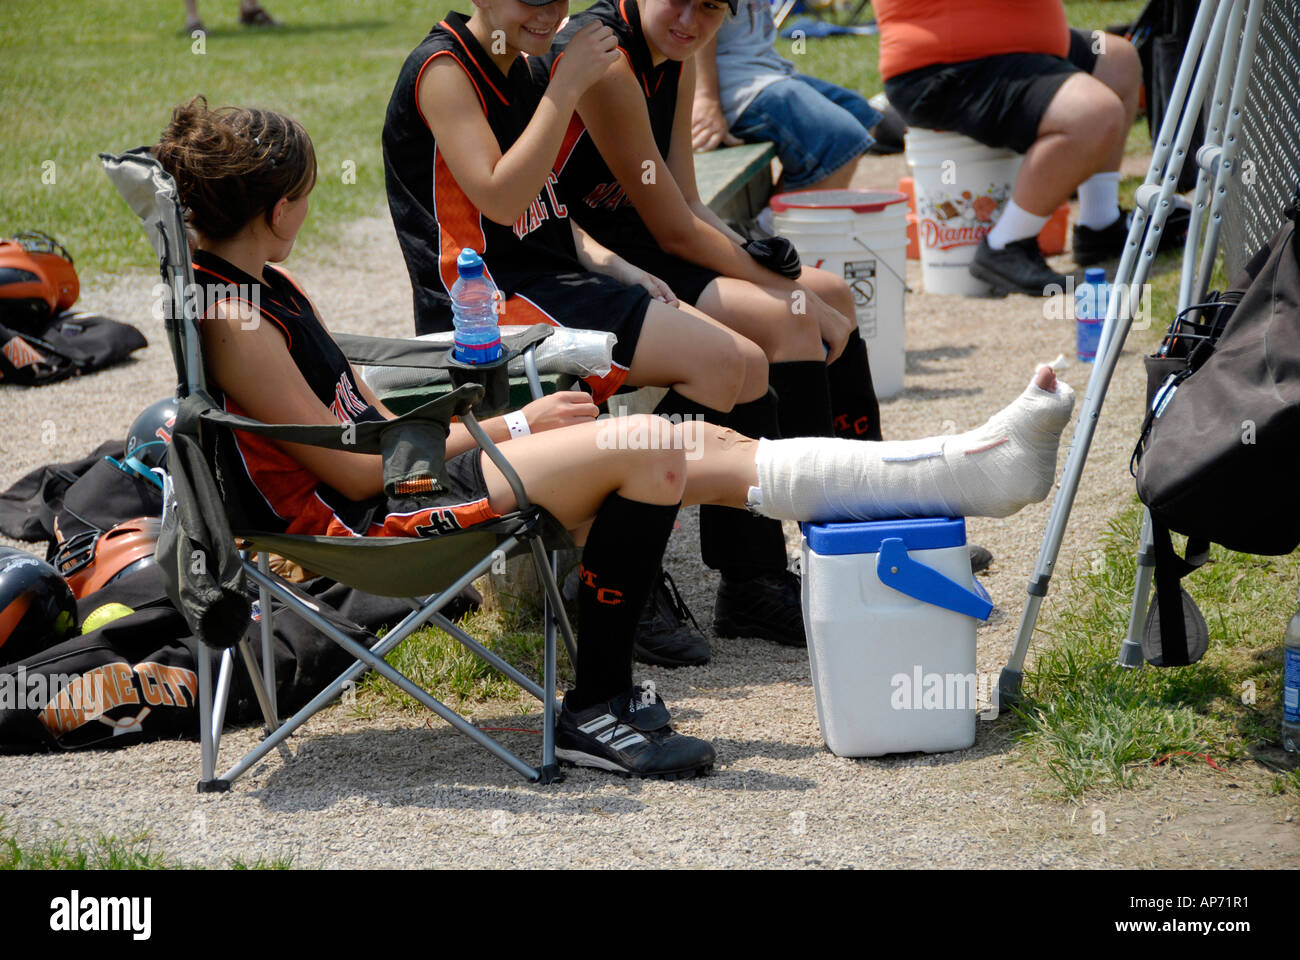 Female softball player sprains ankle from Sports injury due to playing baseball Stock Photo